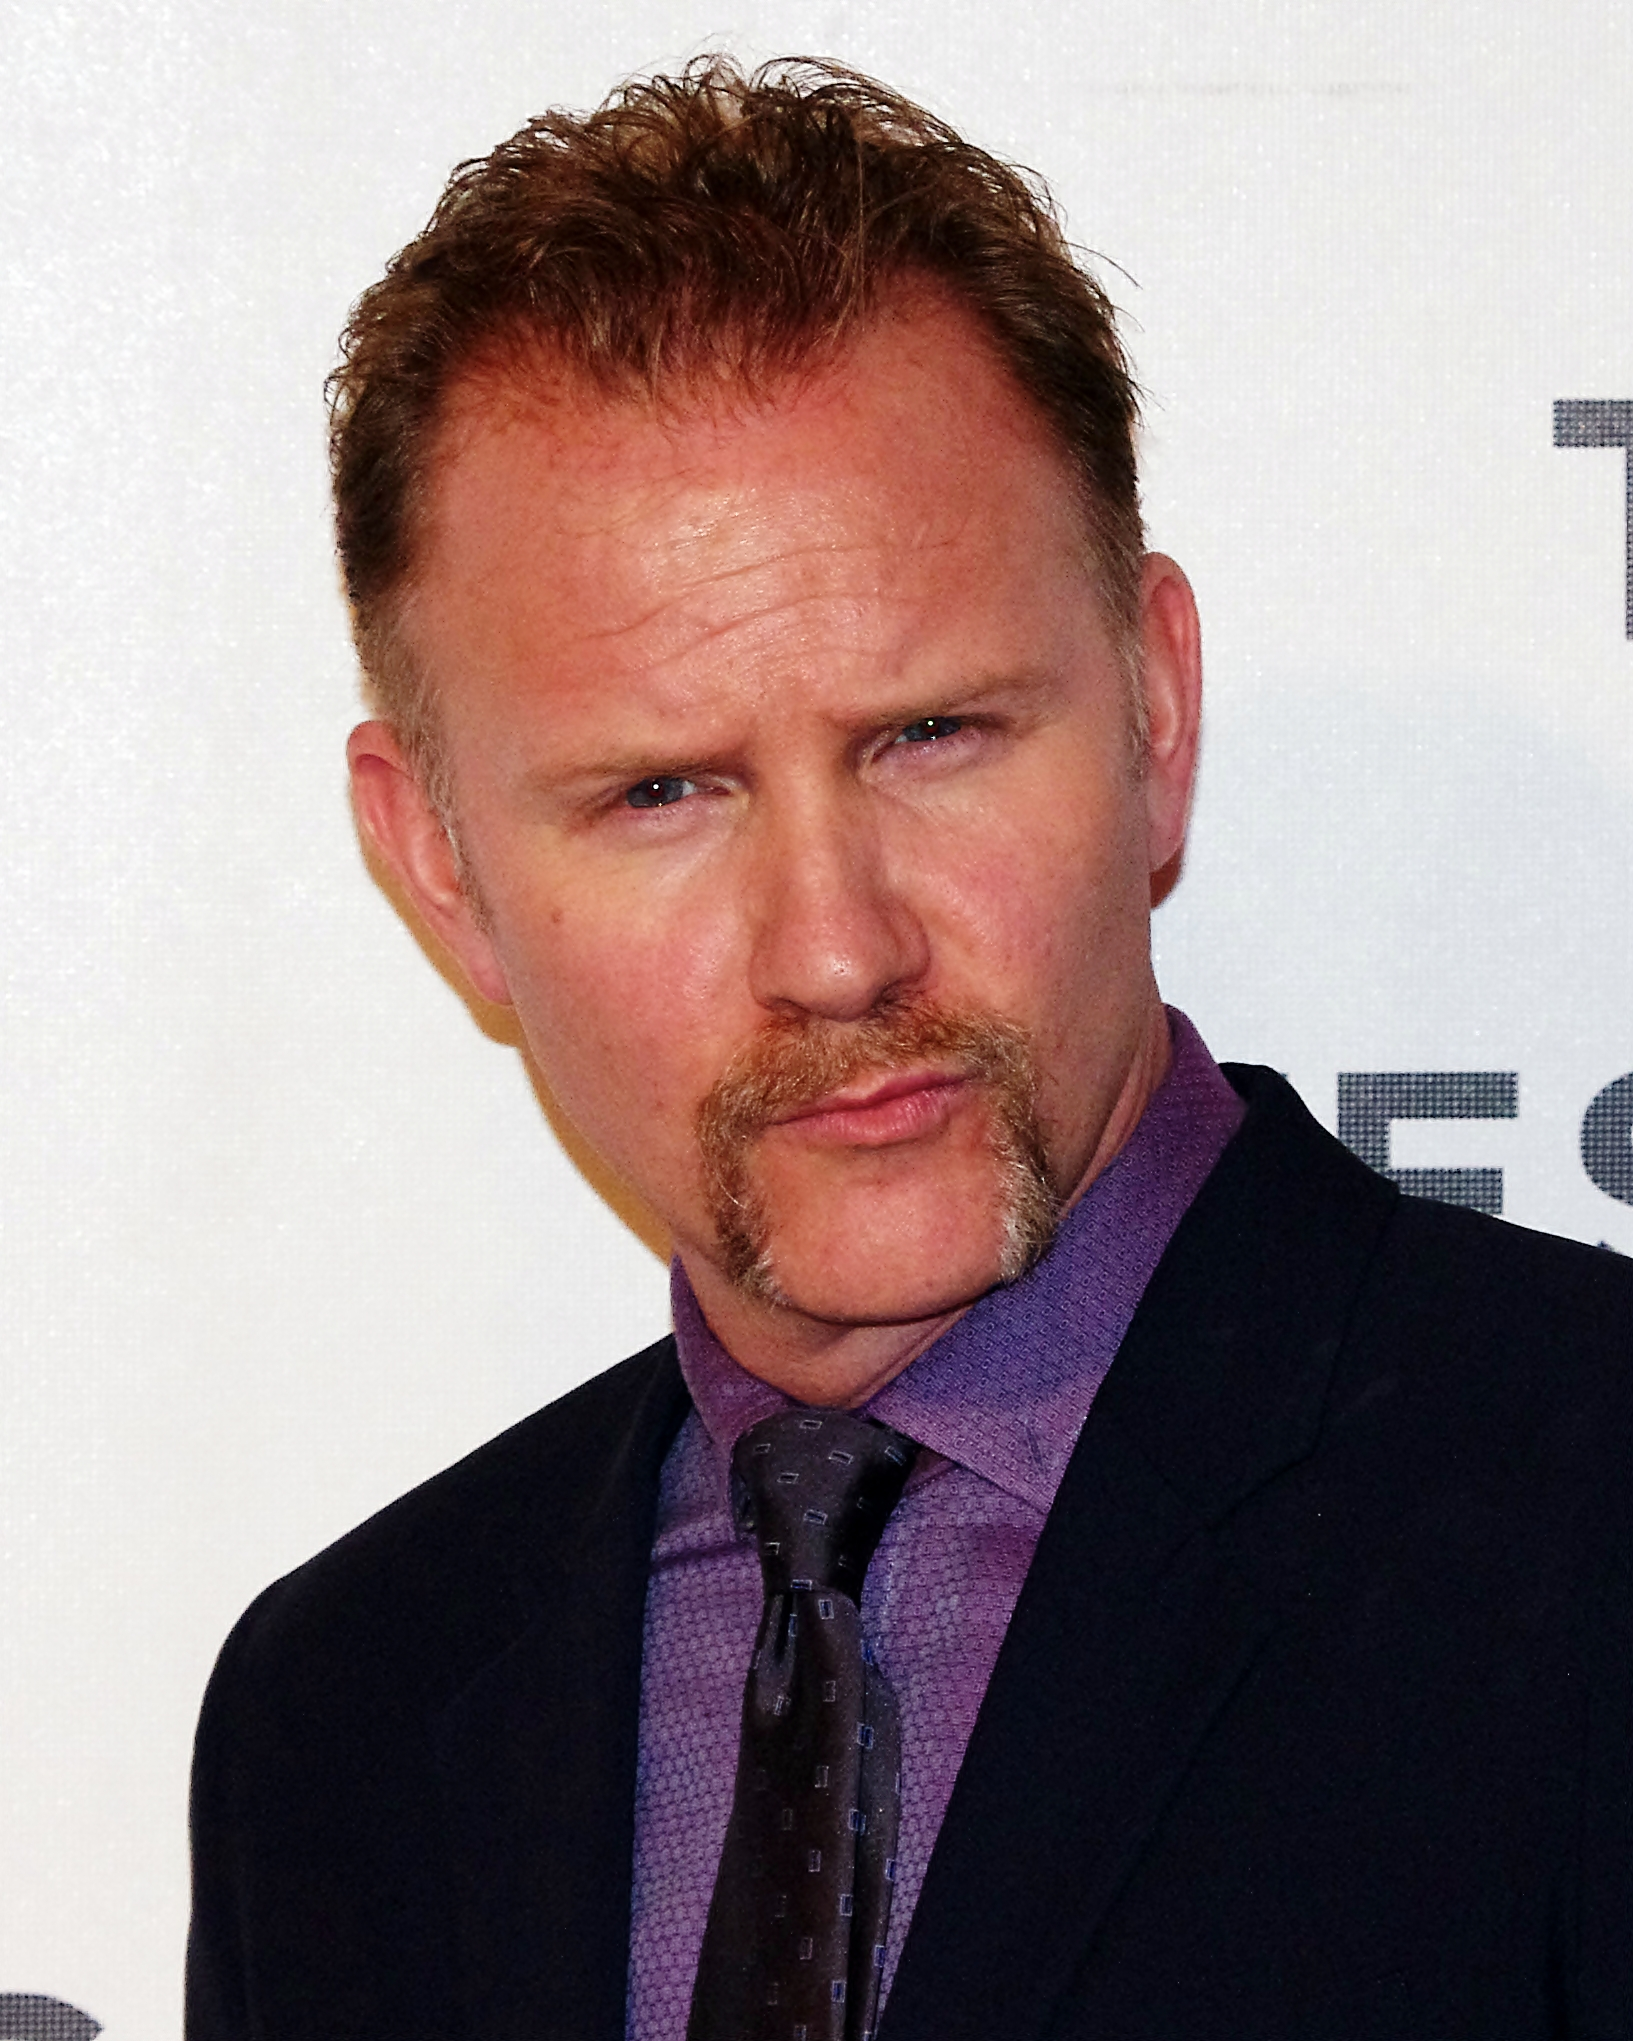 Morgan Spurlock earned a  million dollar salary, leaving the net worth at 4 million in 2017